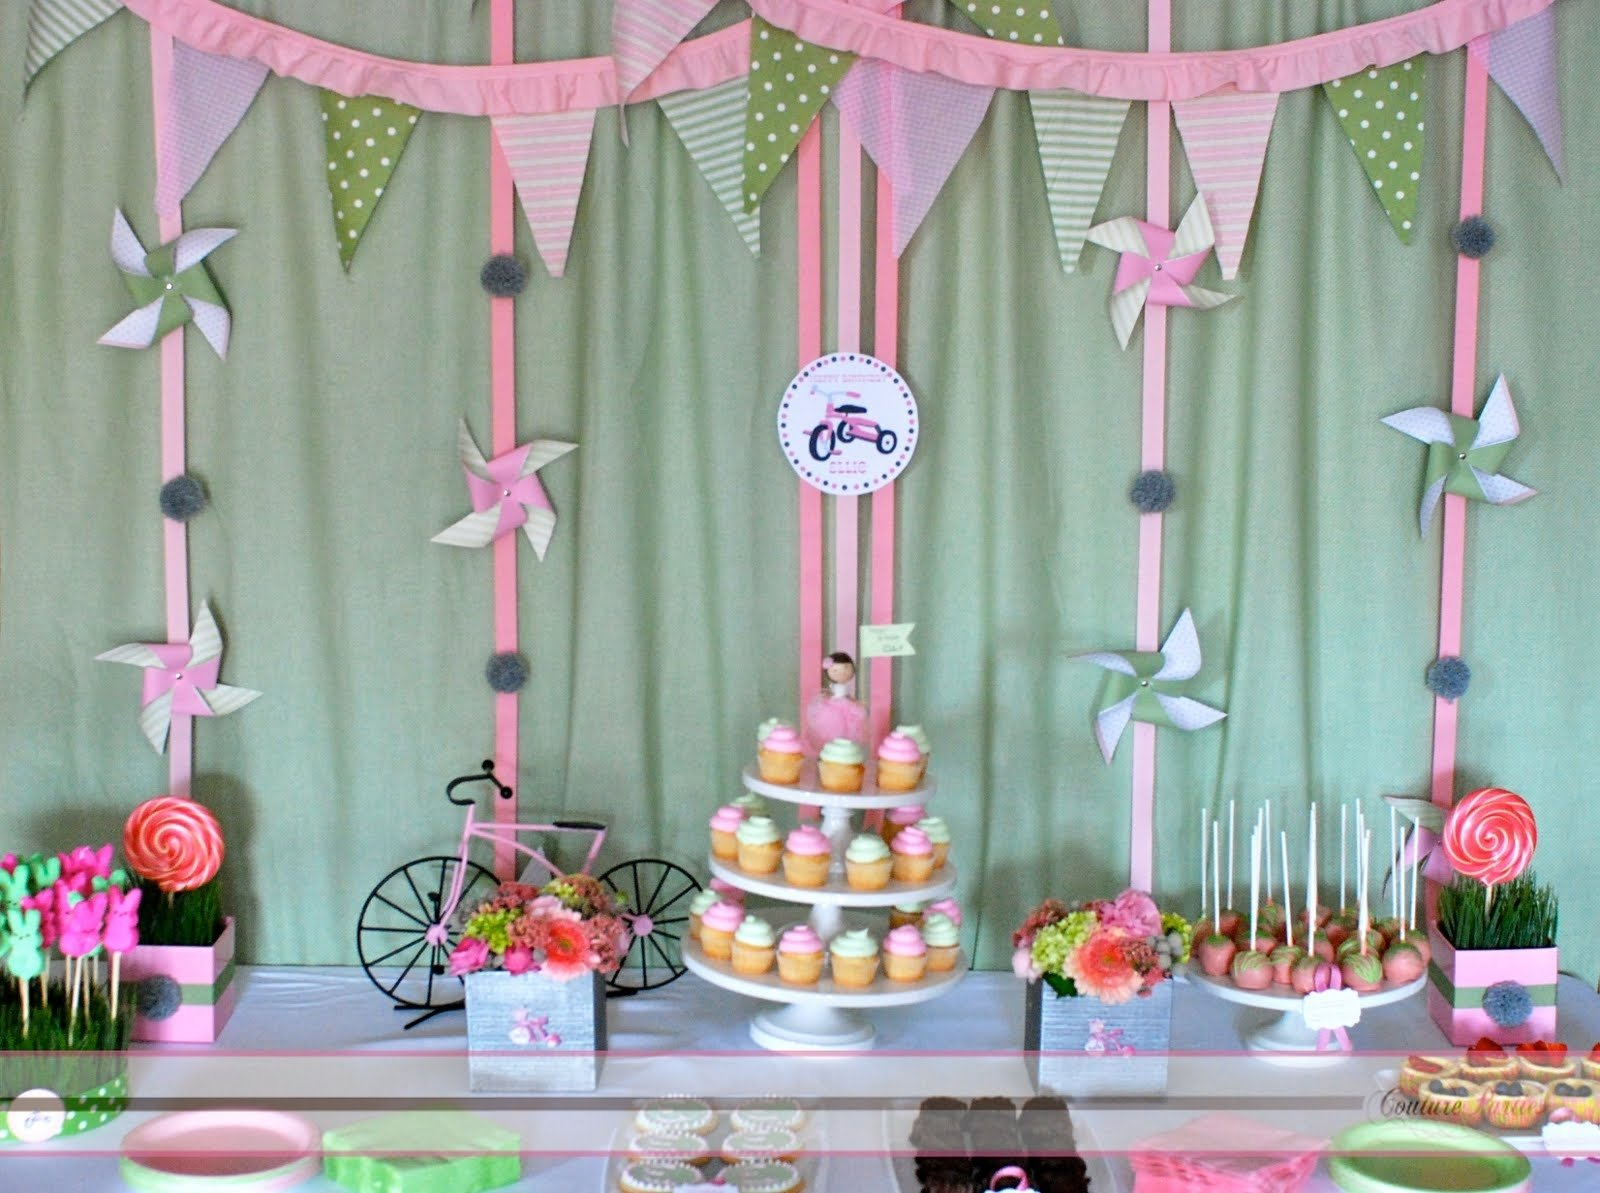 10 Stunning Ideas For Girls Birthday Party 50 birthday party themes for girls i heart nap time 52 2020